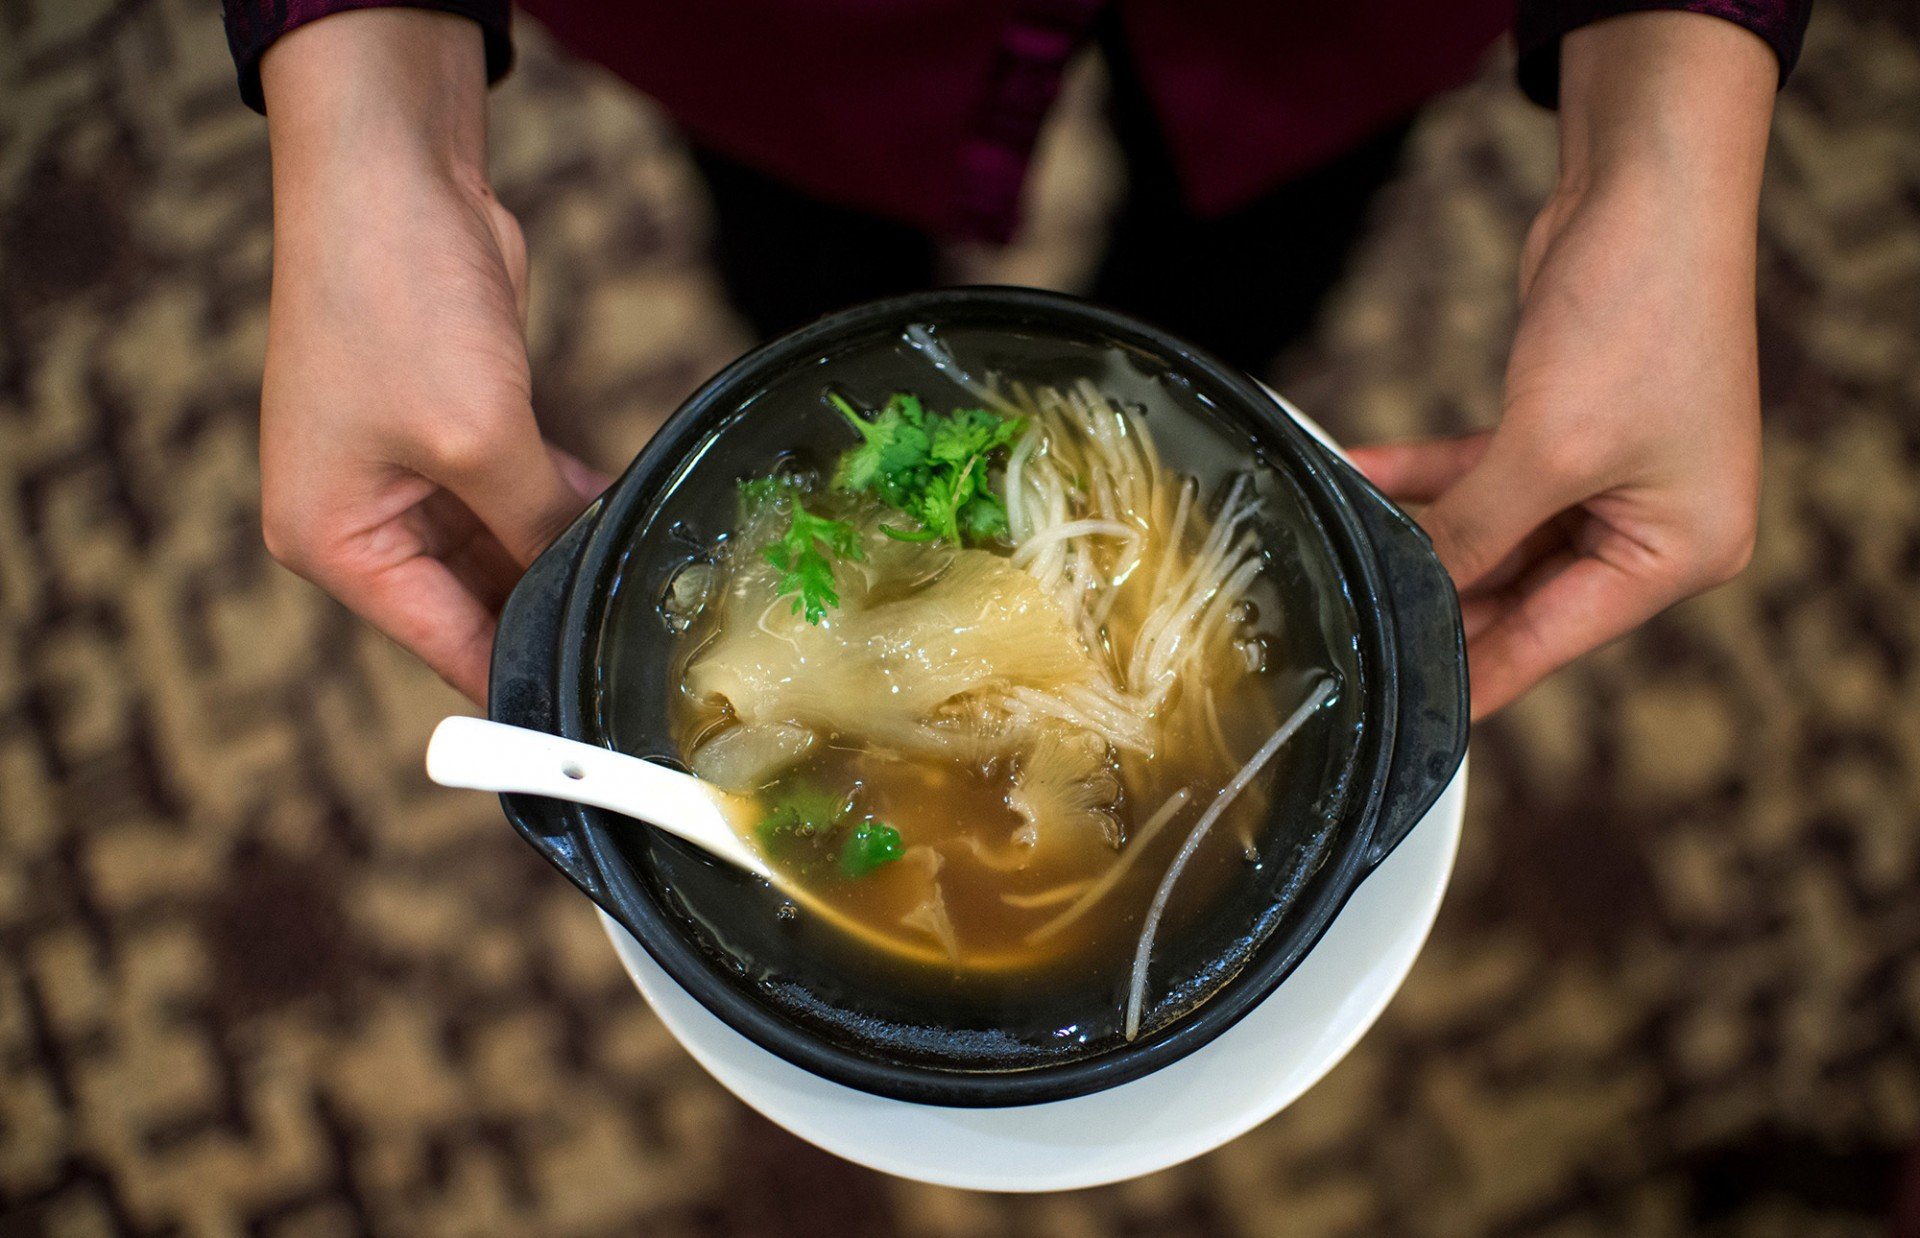 A waitress serves shark fin soup in a restaurant in Guangzhou, in southern China's Guangdong province on Aug. 10, 2014. Photo: Johannes Eisele/AFP/Getty Images